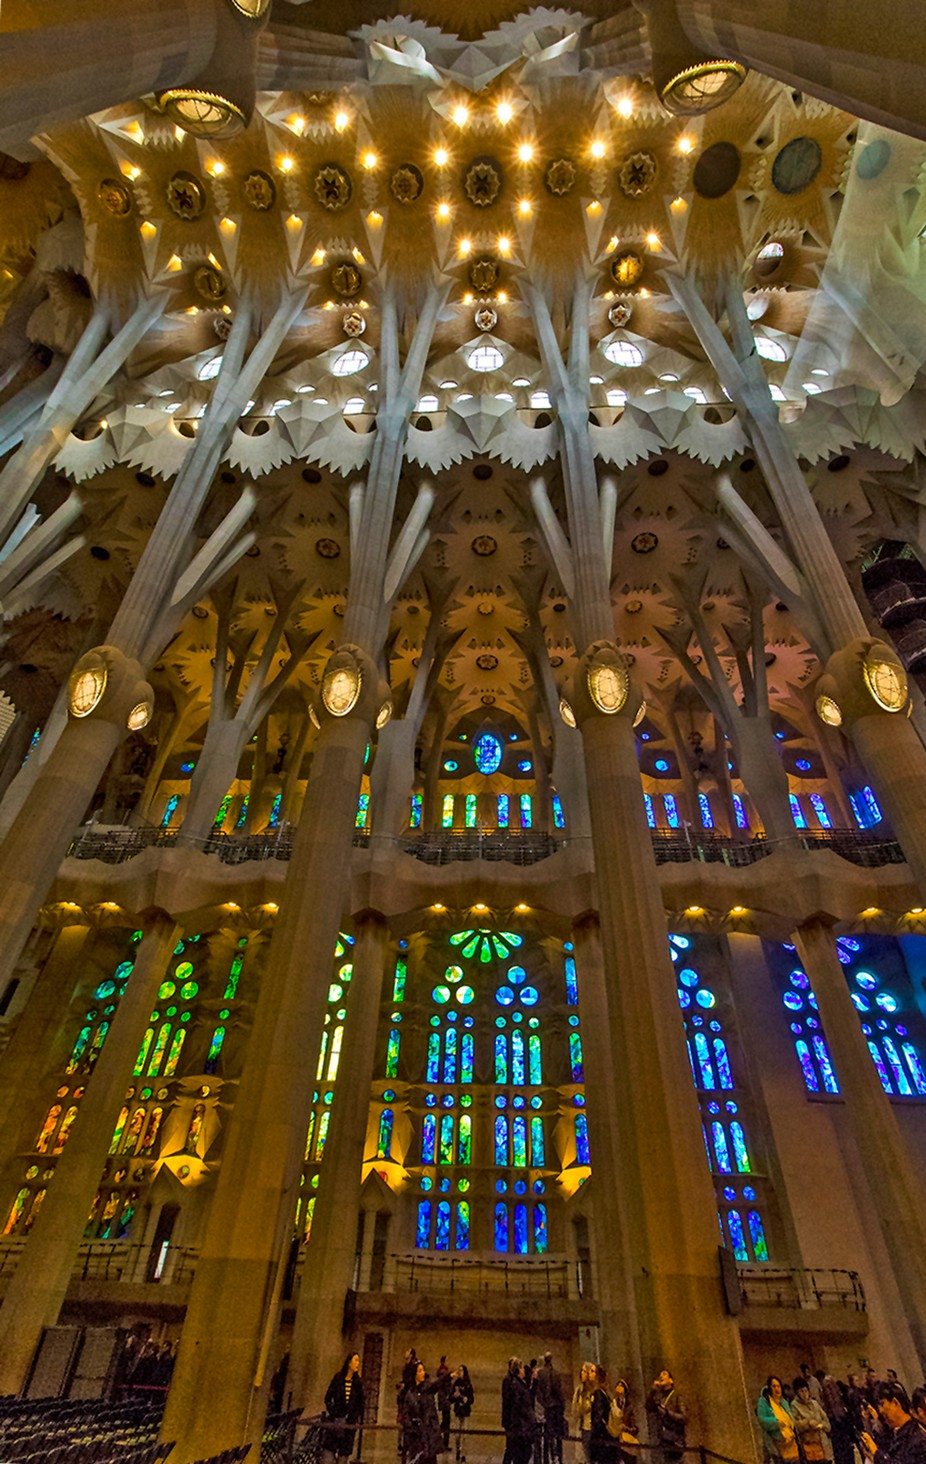 Inside Gaudi's spectacular Basilica Sagrada Familia in Barcelona, taken in December 2017. Details: Canon EOS 7D Mk II. Canon 10-18 mm lens at 10 mm. ISO 3200, f/8, 1/125 sec, -0.67 comp.